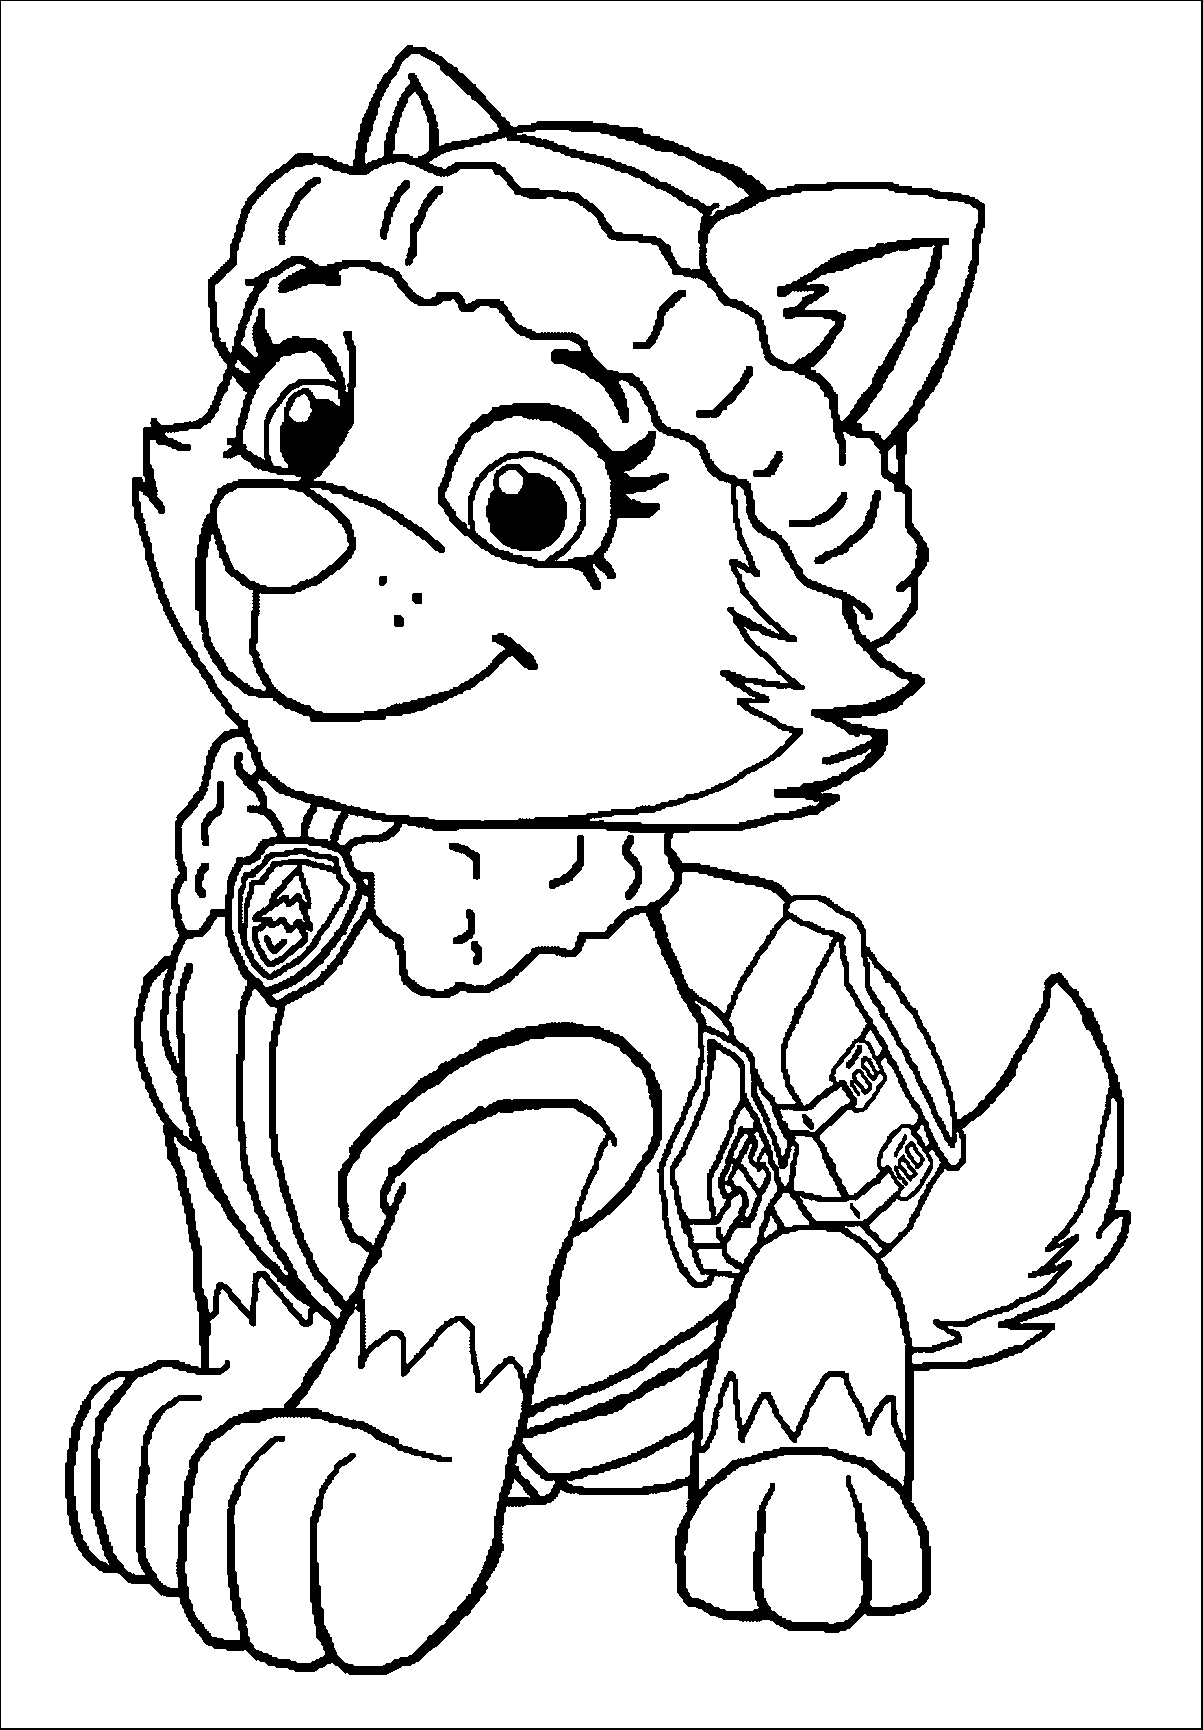 paw patrol coloring paw patrol coloring pages patrol coloring paw